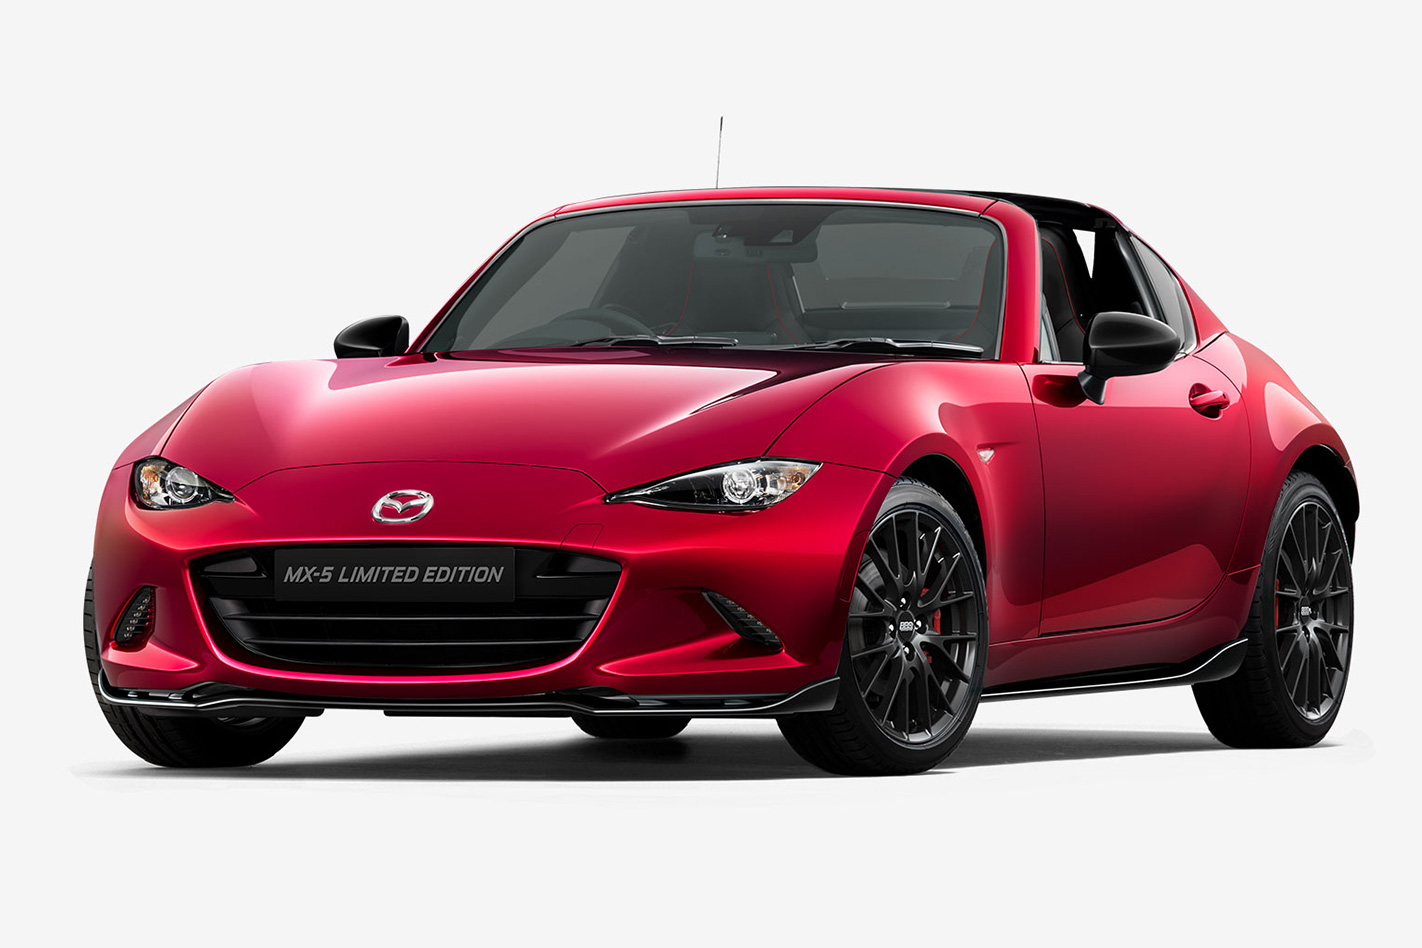 Mazda-MX-5-RF-Limited-Edition-front.jpg